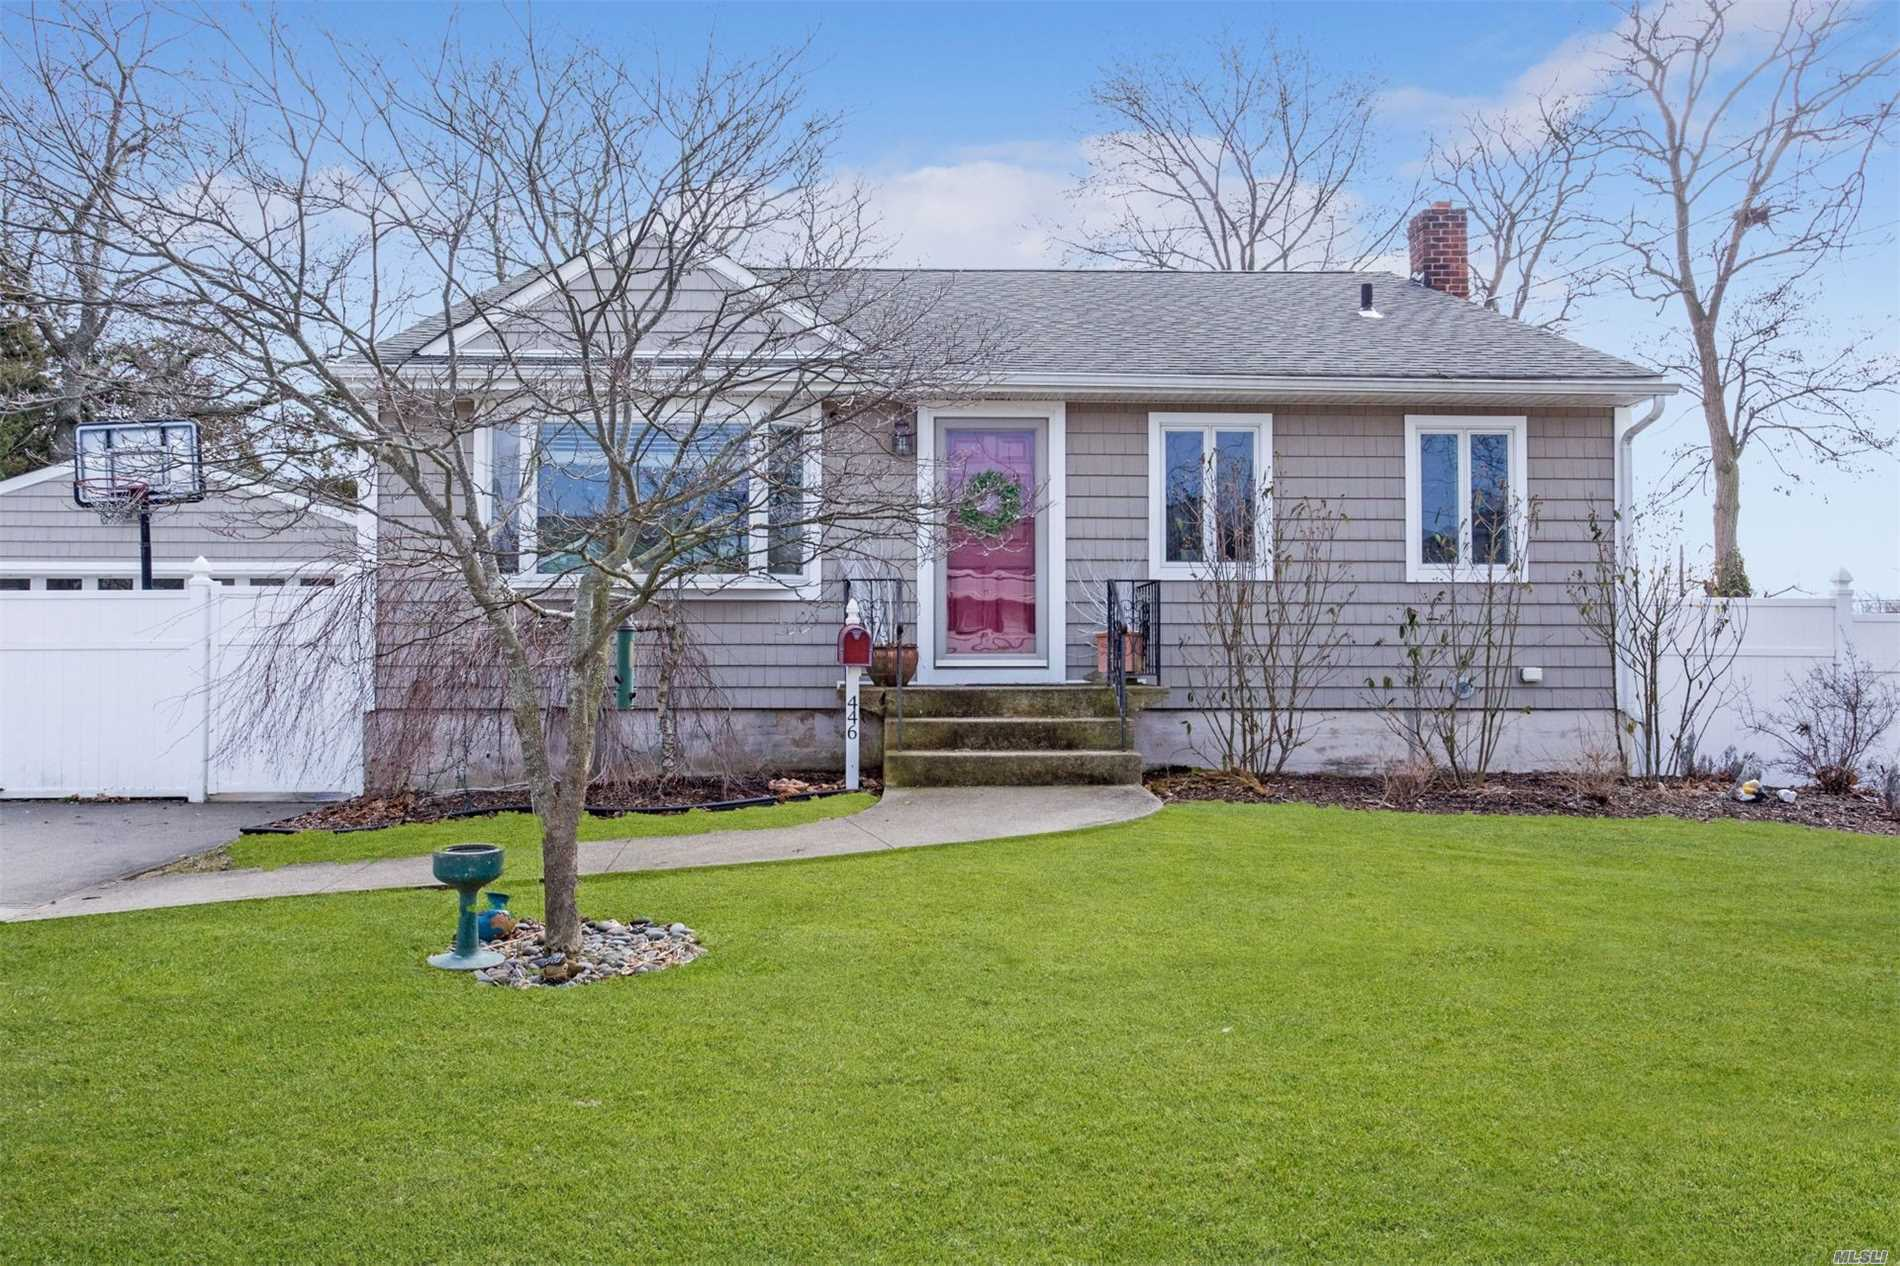 446 Heathcote Rd - Lindenhurst, New York